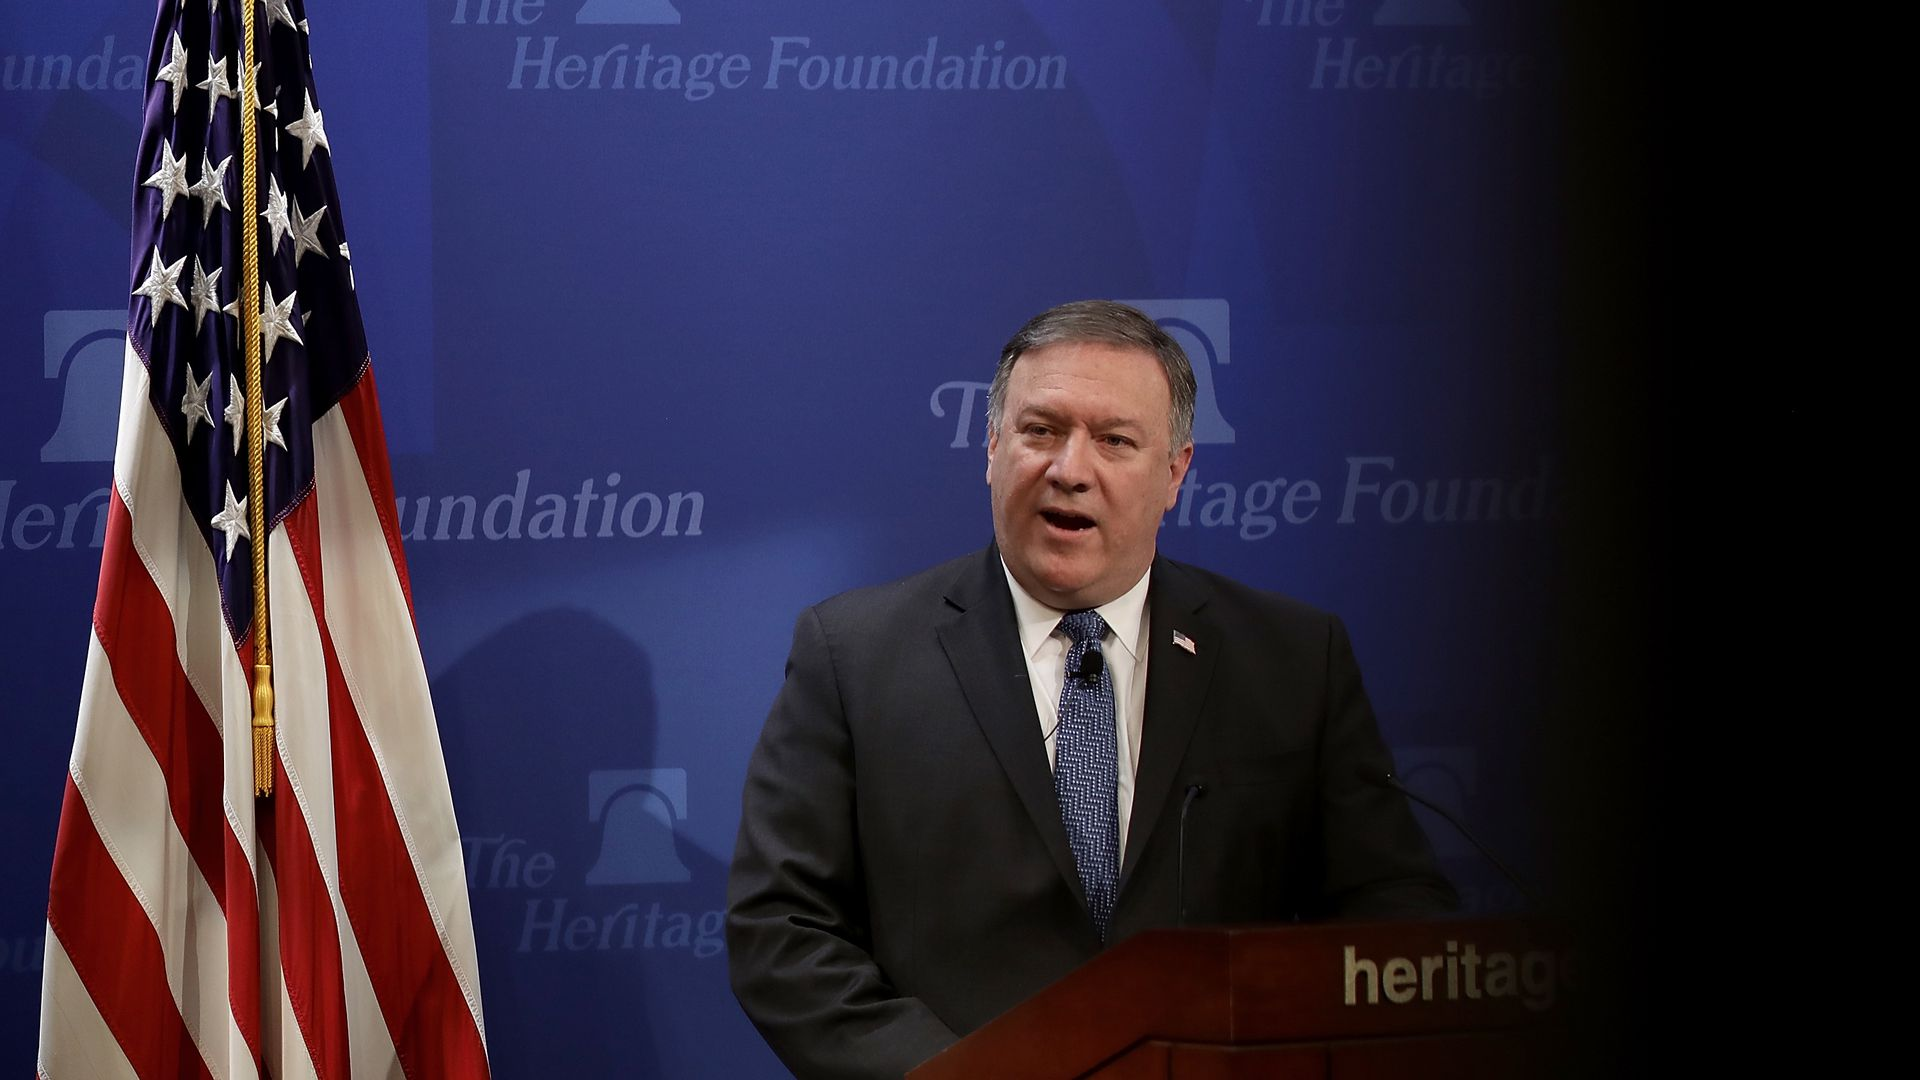 U.S. Secretary of State Mike Pompeo